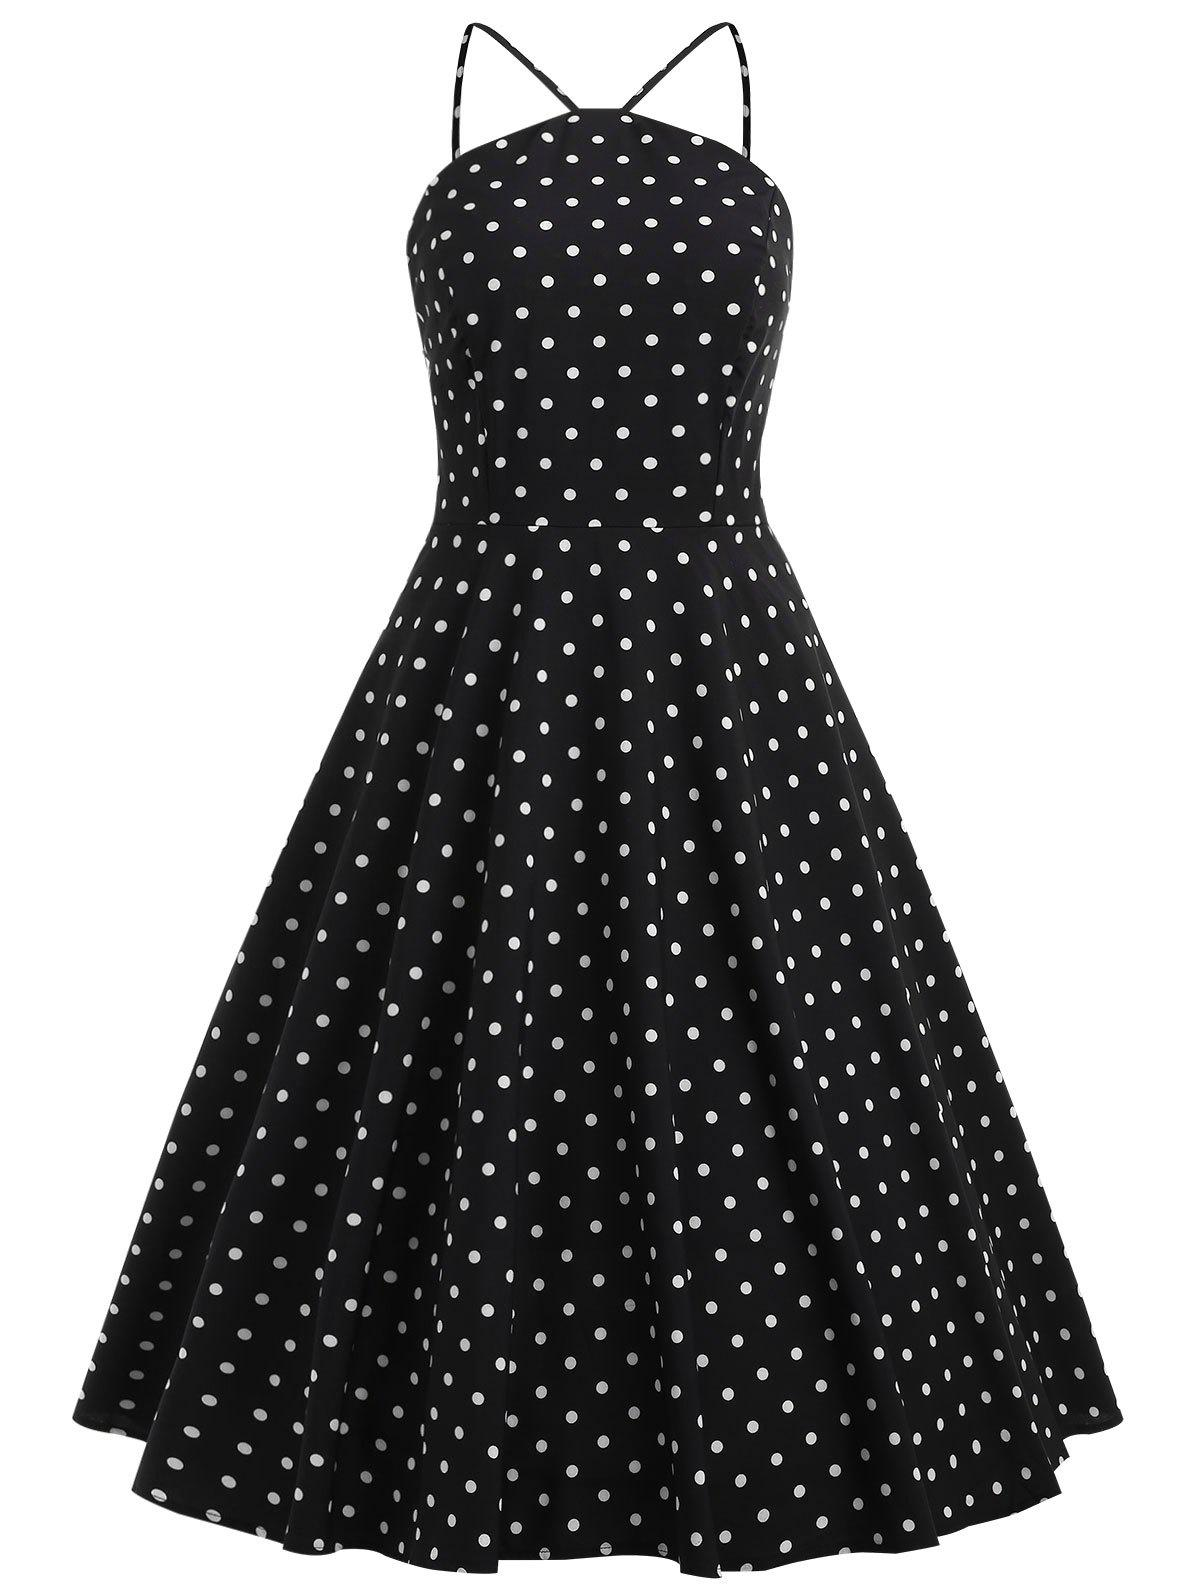 Sale Knee Length Polka Dot Swing Dress